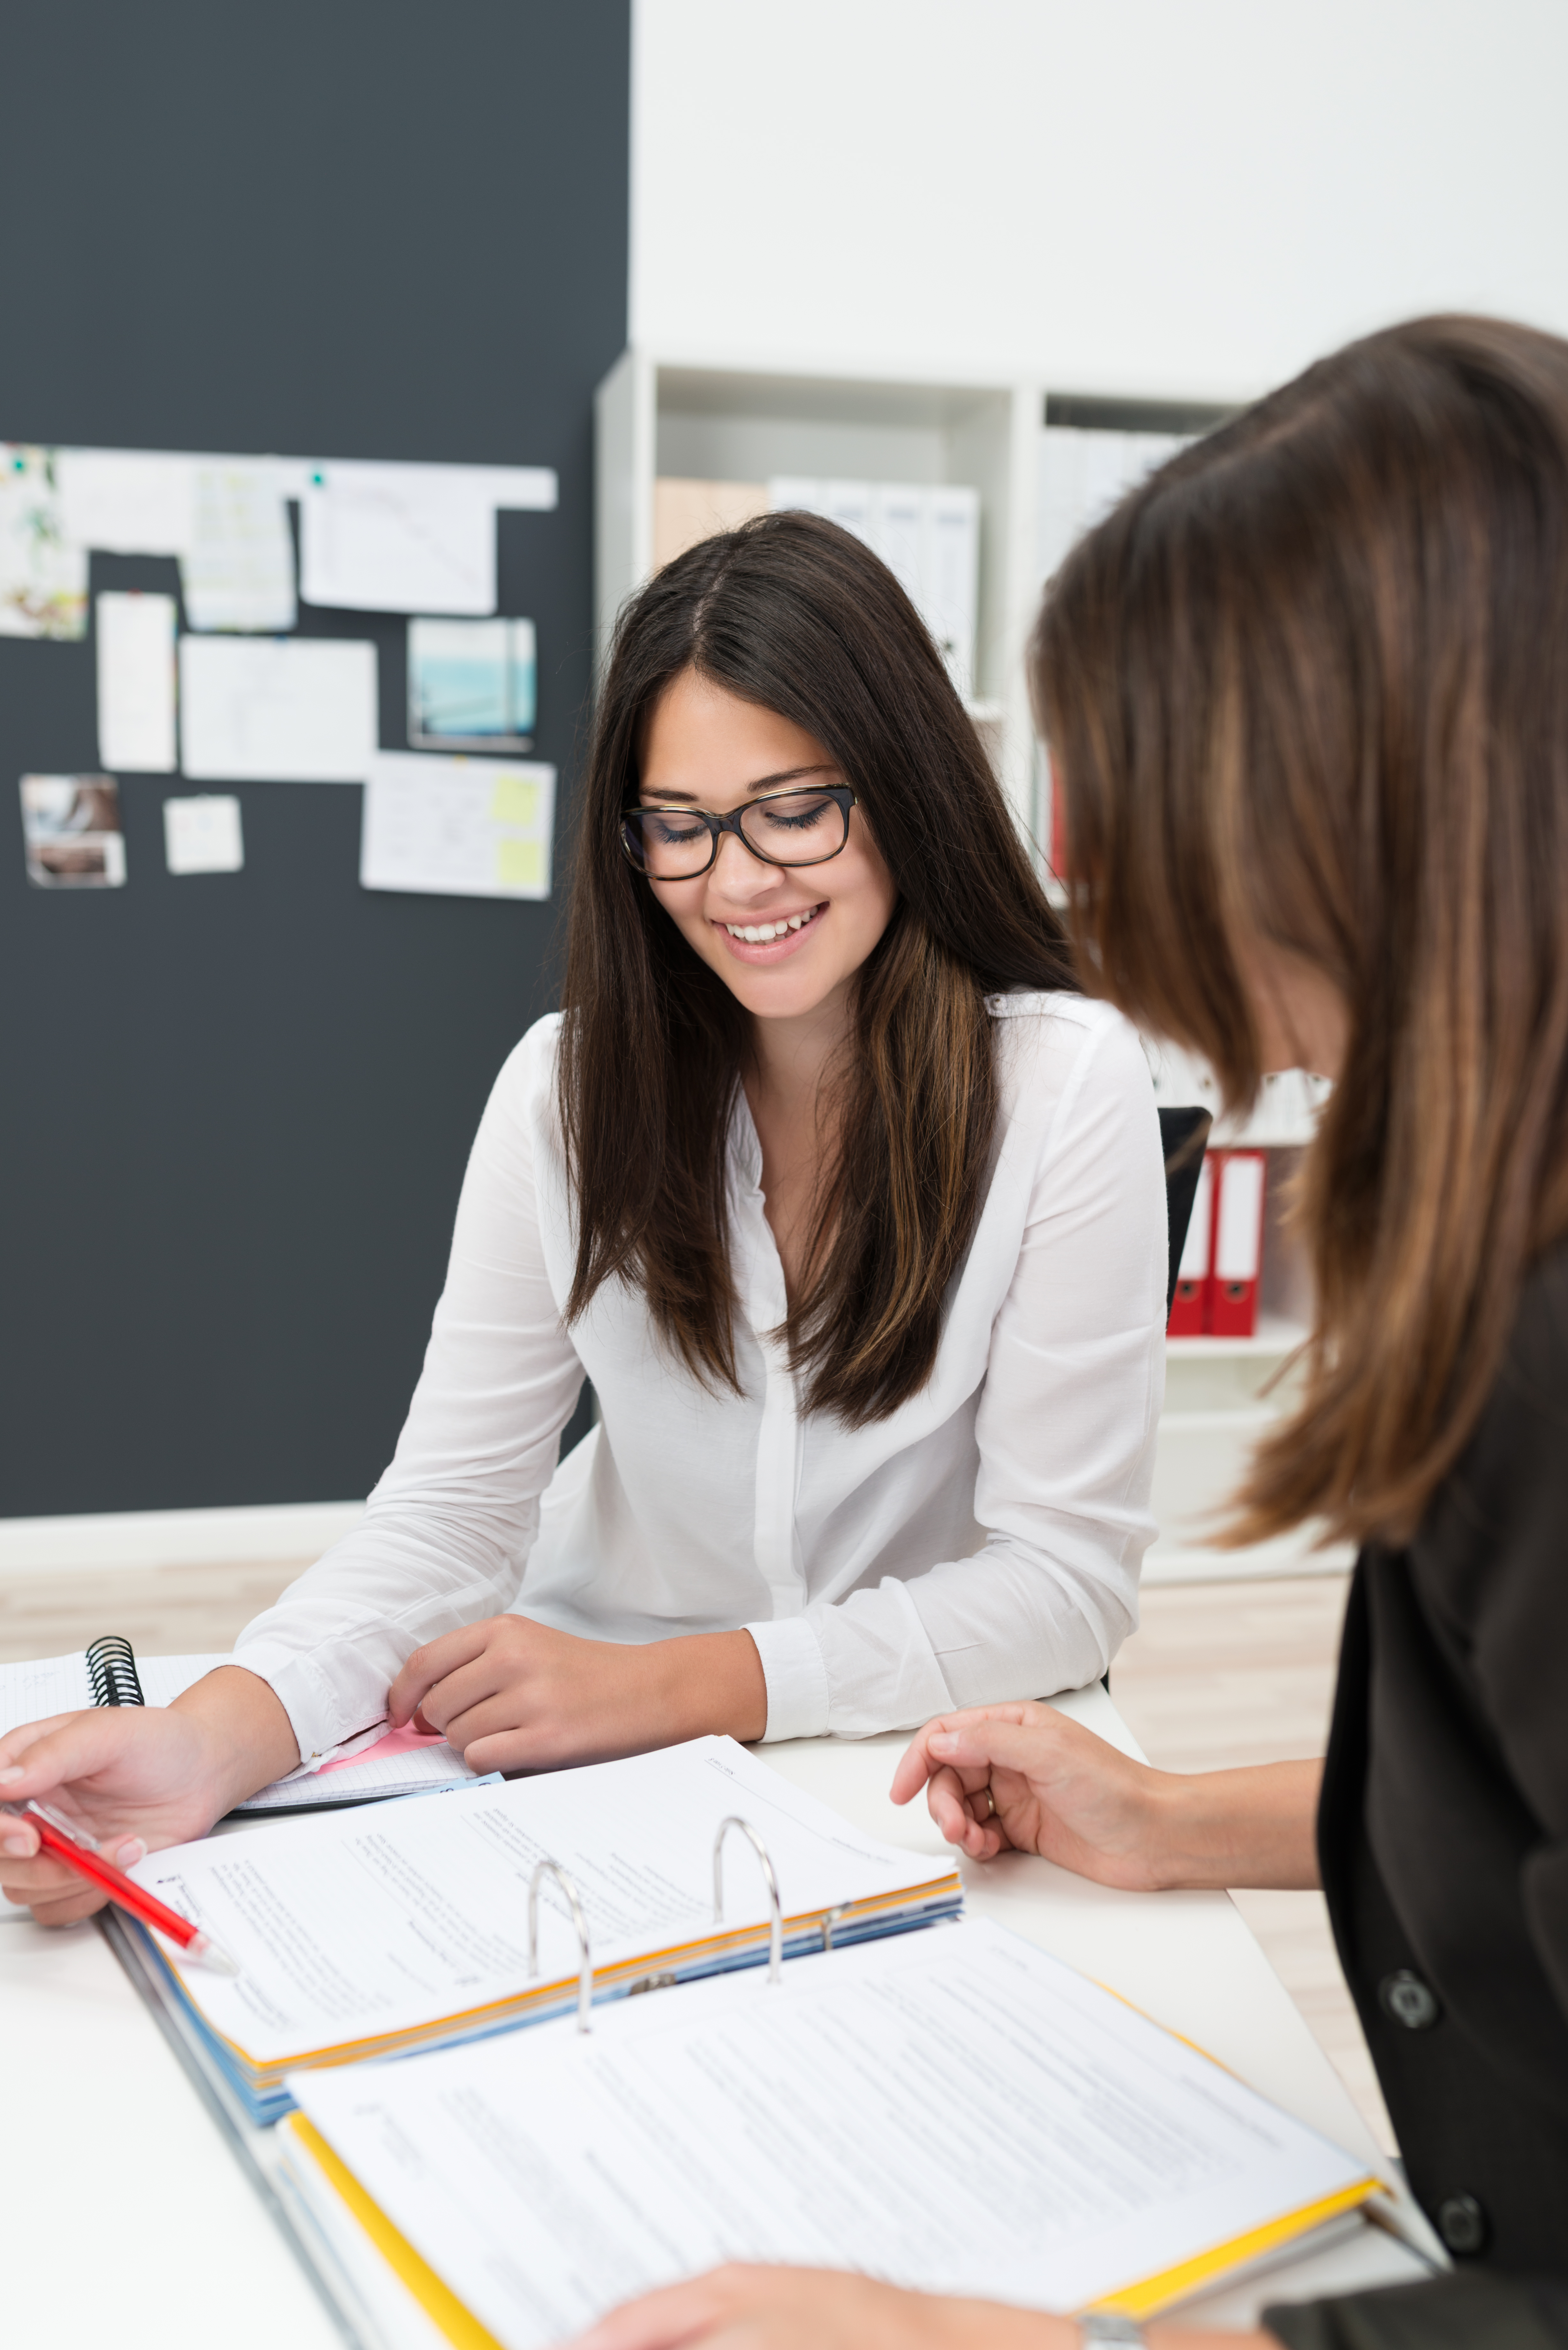 Two Businesswomen Looking at Notes in Meeting